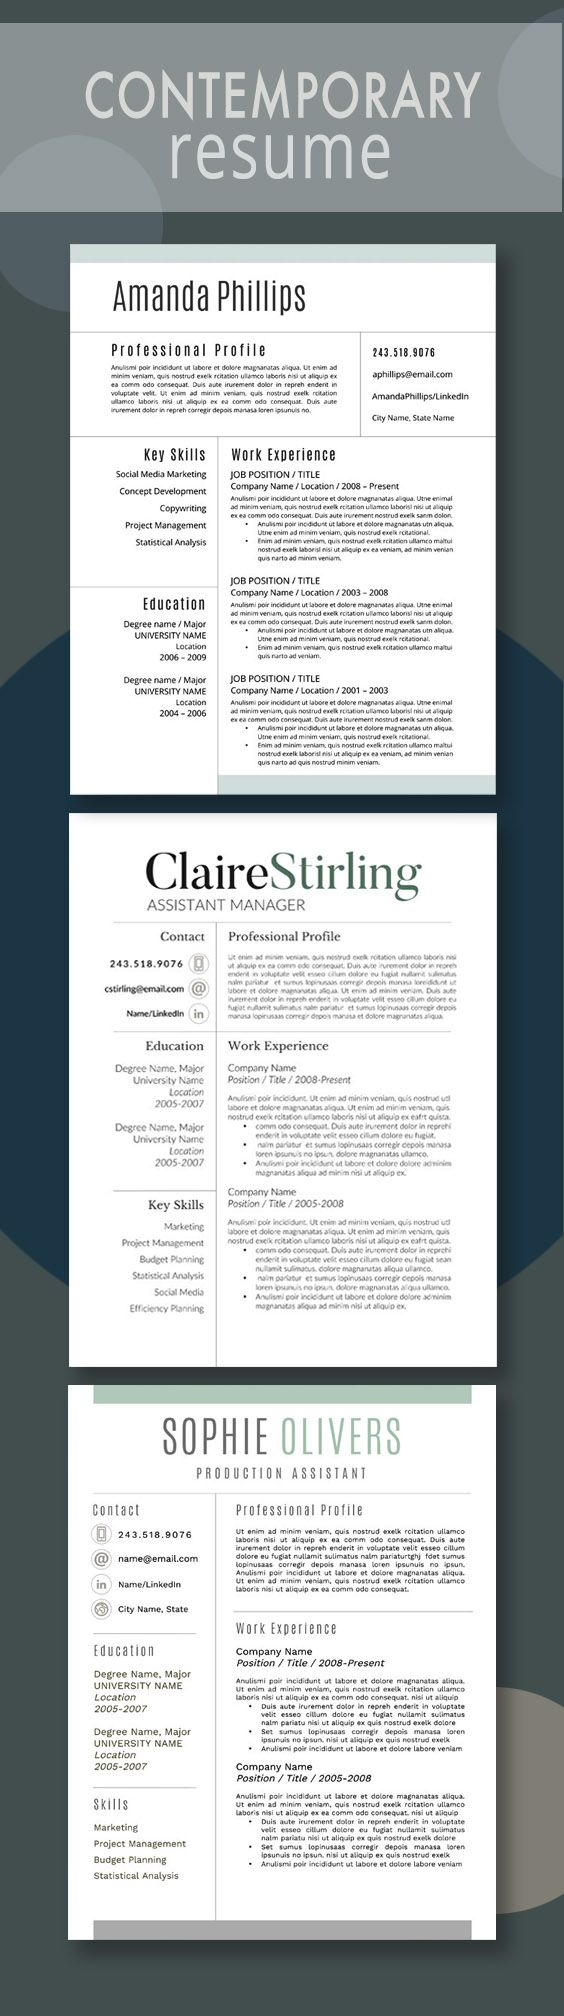 Word Cv Templates 2007%0A Super happy with my resume template  great service